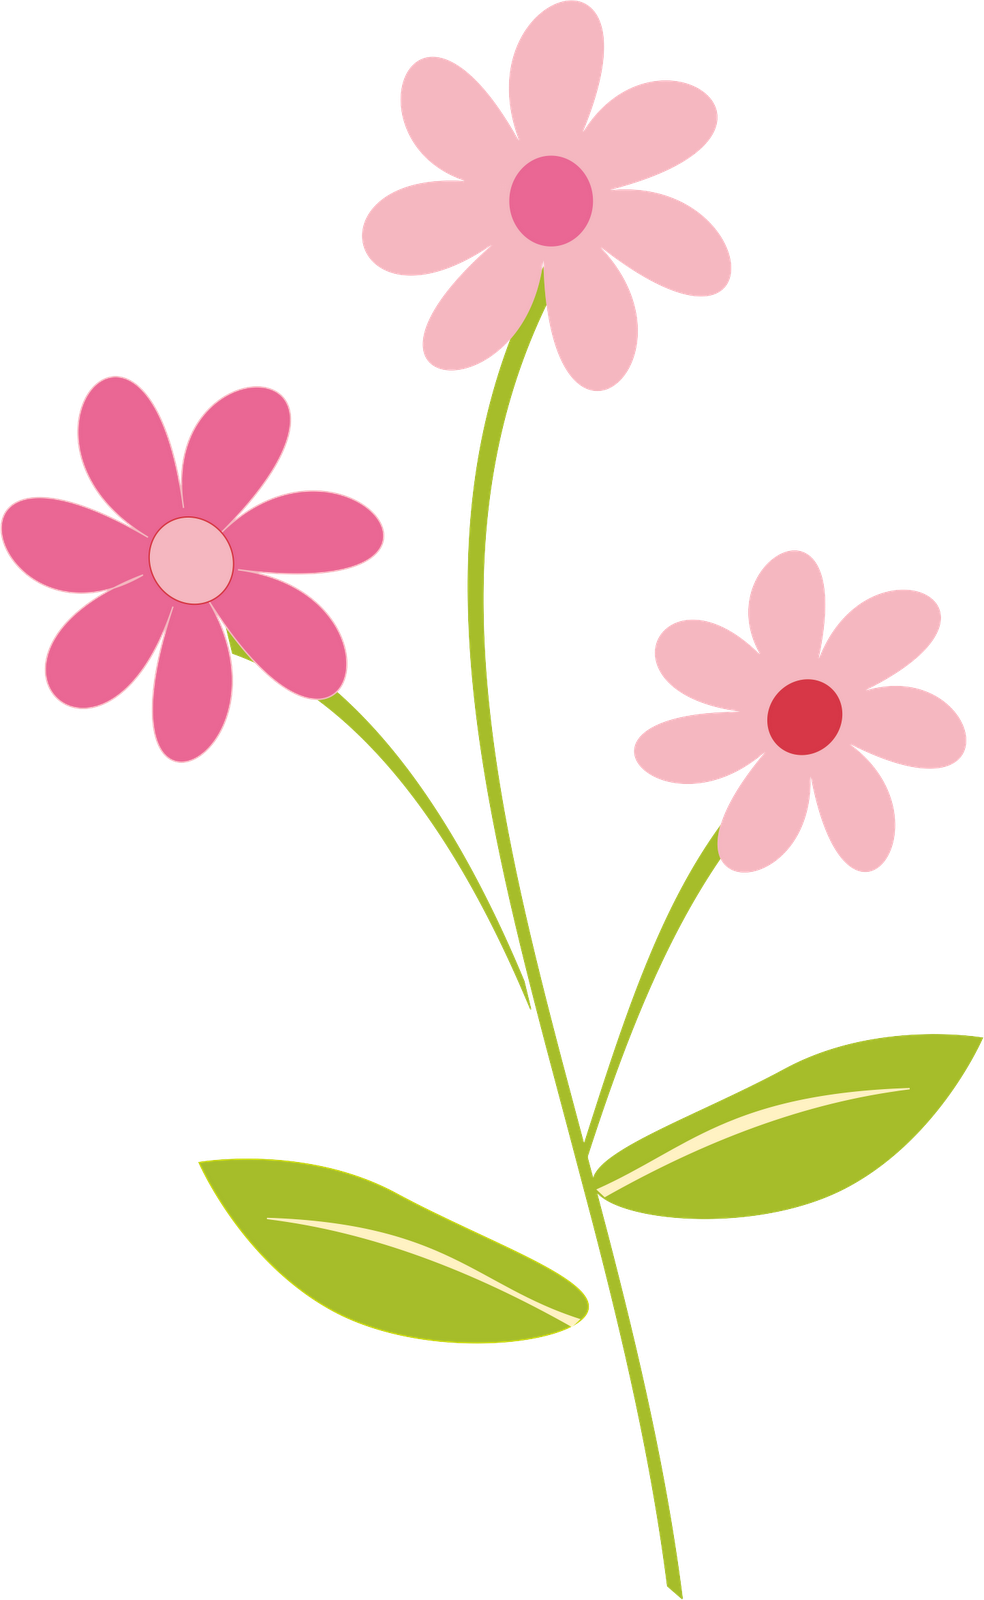 Pictures of cartoon flowers clip art flowers healthy free flower clipart for kids at getdrawings free for personal mightylinksfo